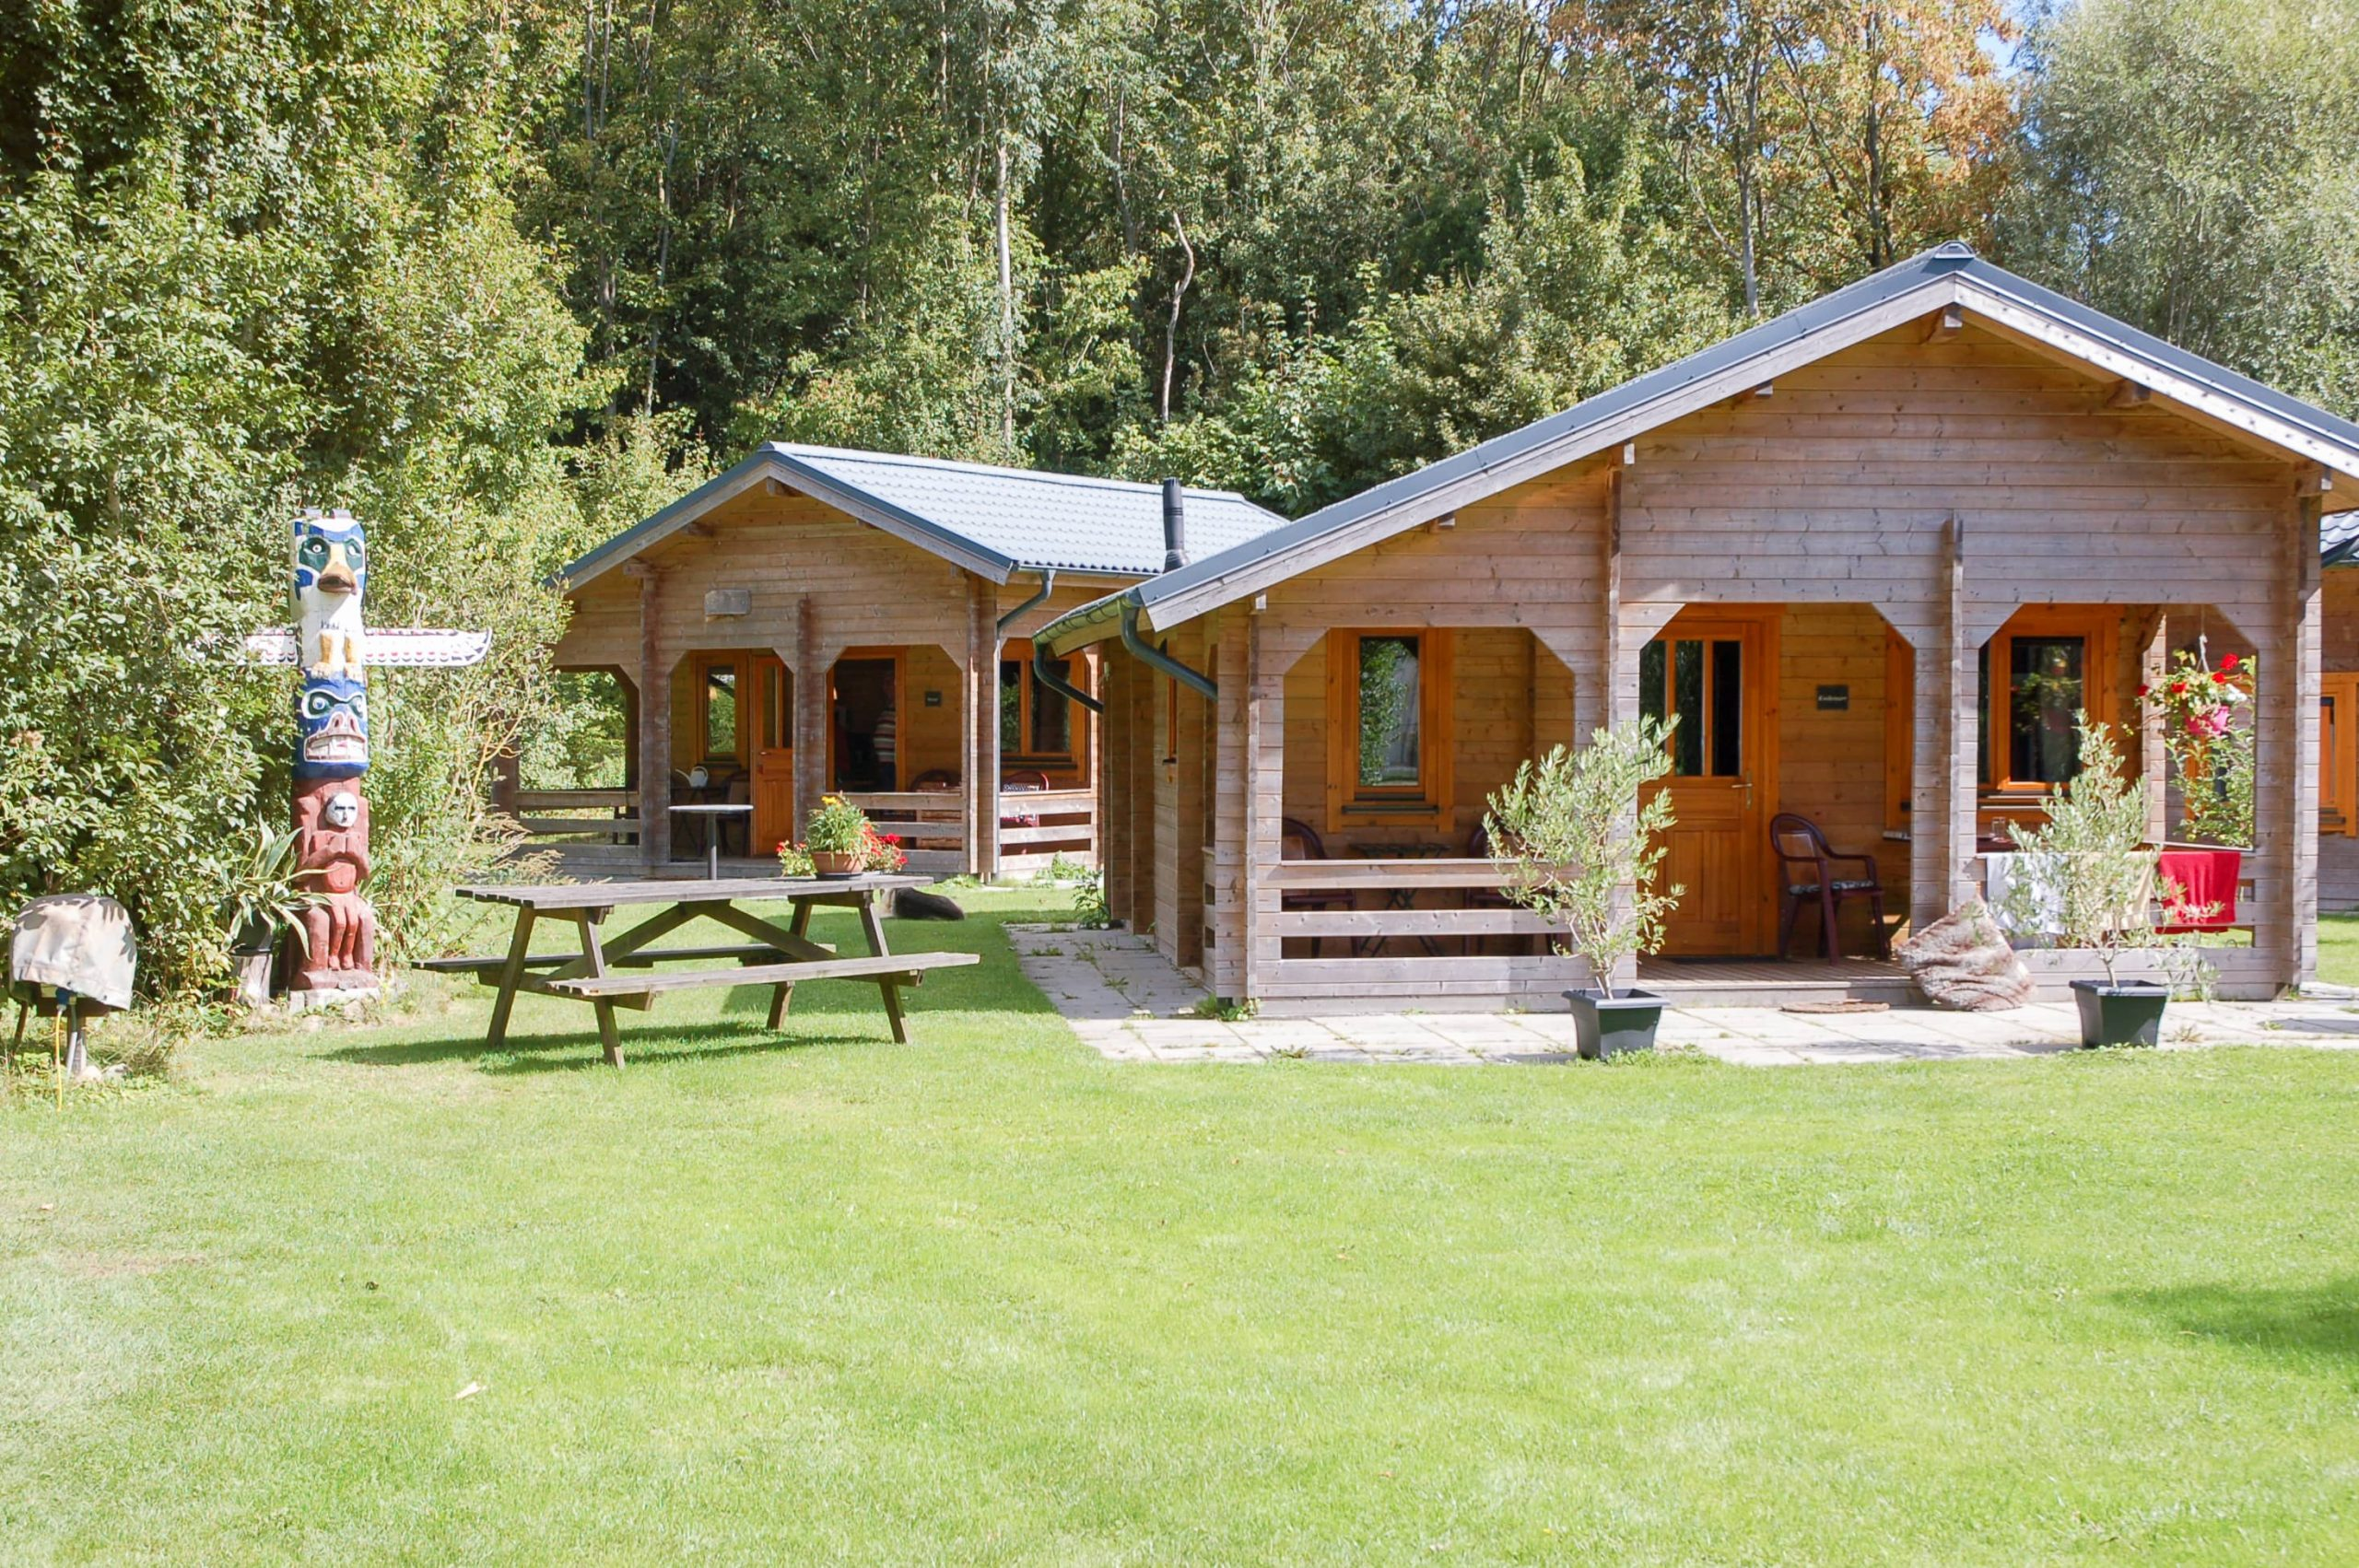 Houten chalets kanocamping t Ol Gat